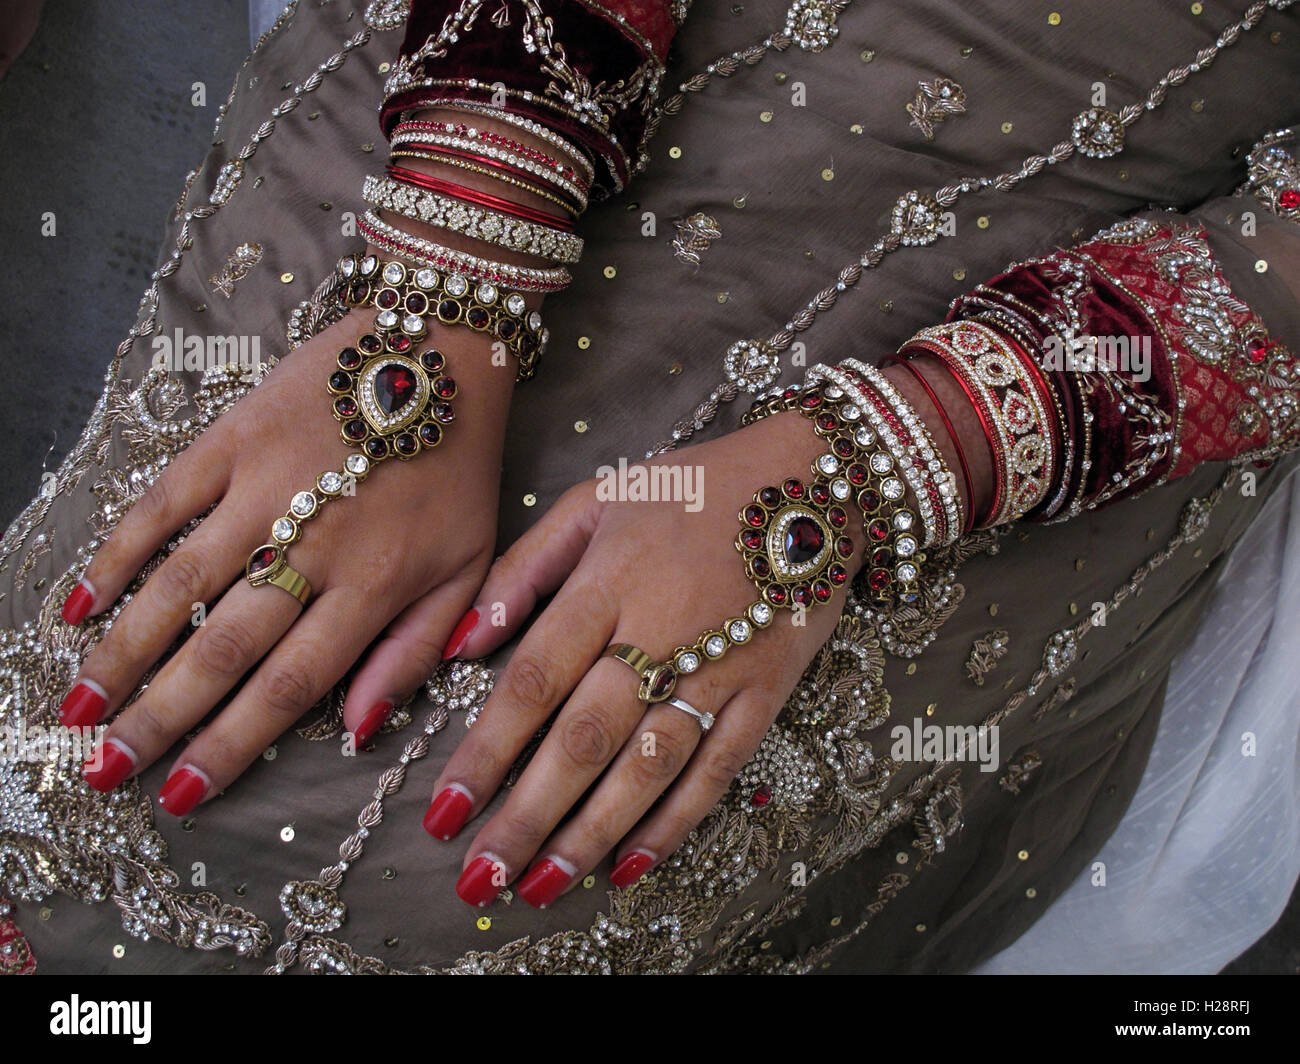 Asian wedding hands and jewelery, henna and gold - Stock Image